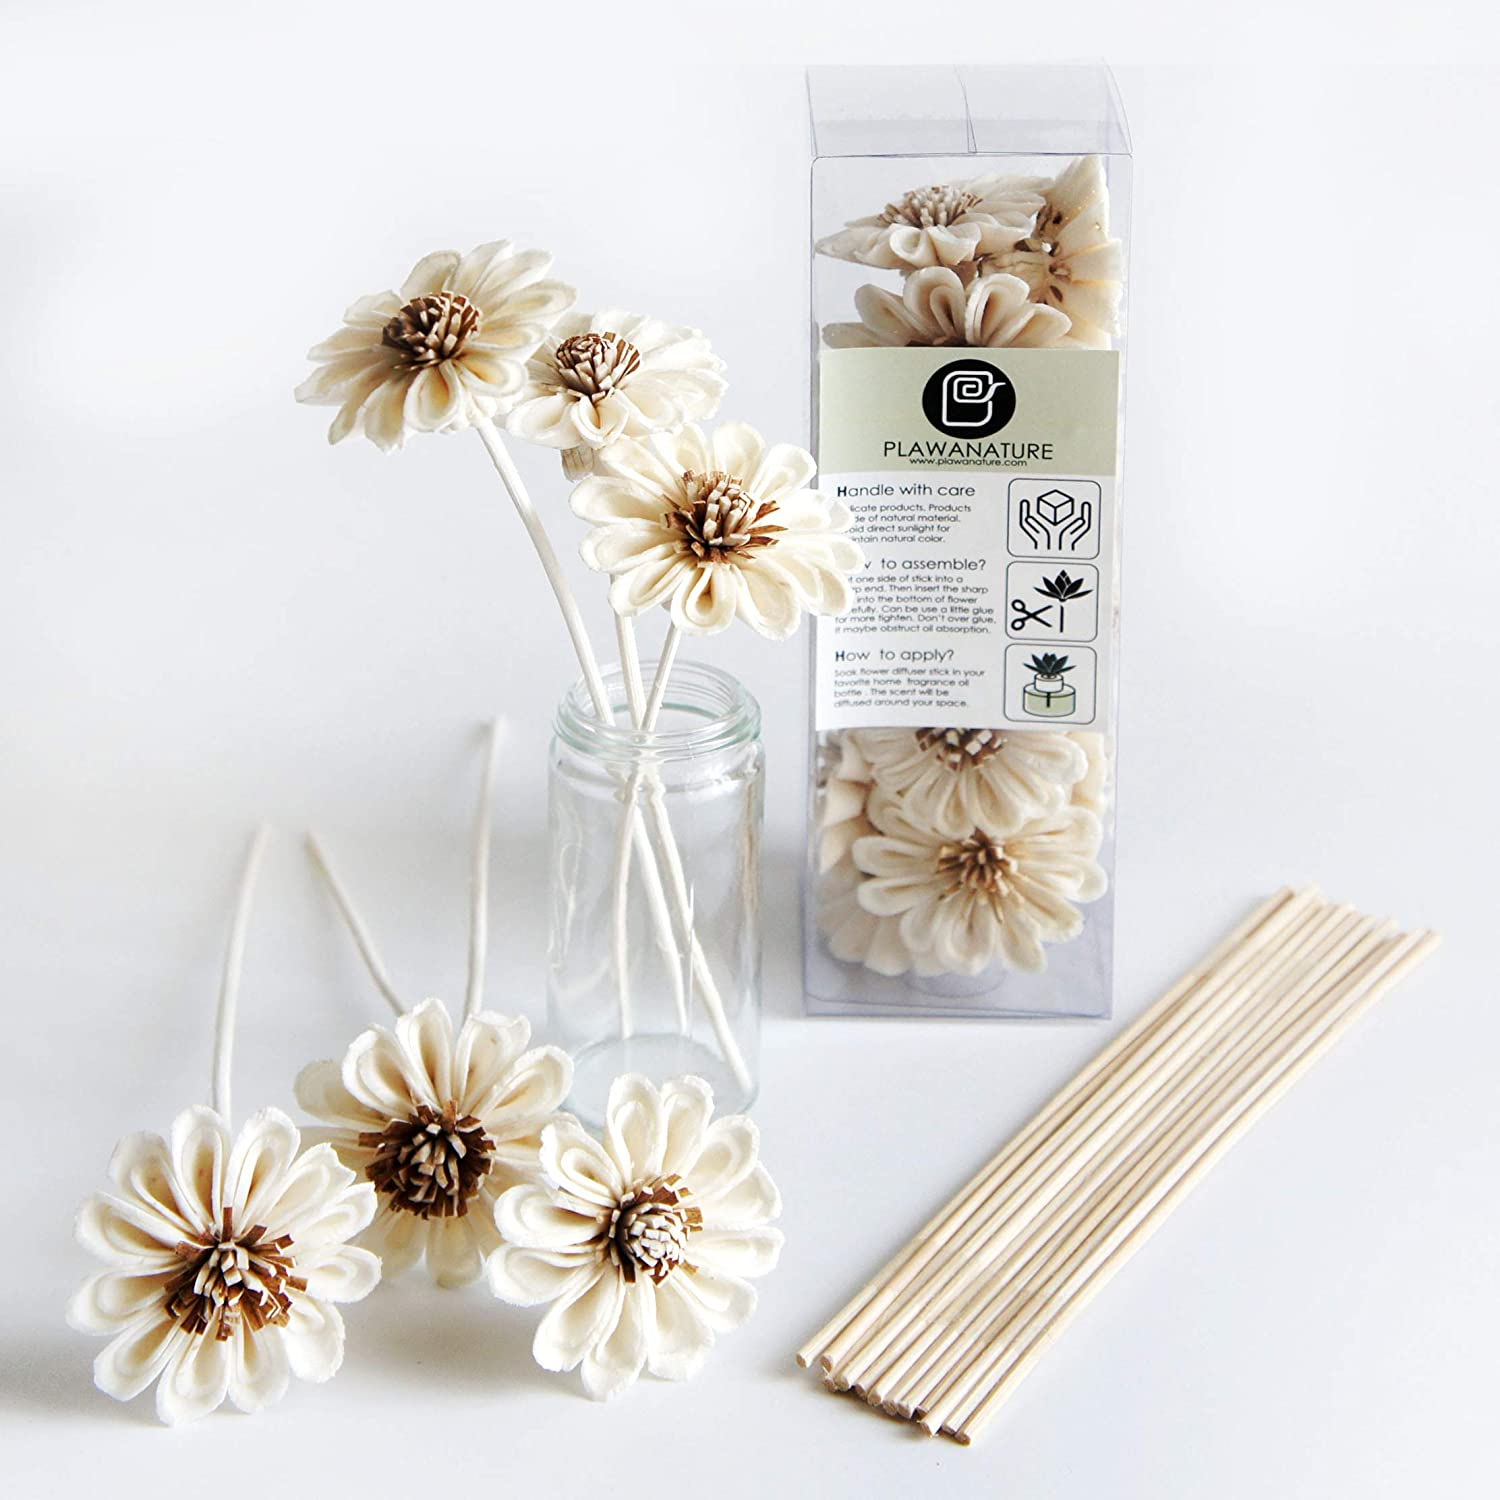 Plawanatureのセット10ホワイトSun Flower Sola Wood Flower with Reed Diffuser for Home Fragranceアロマオイル。 B0196FLCDI